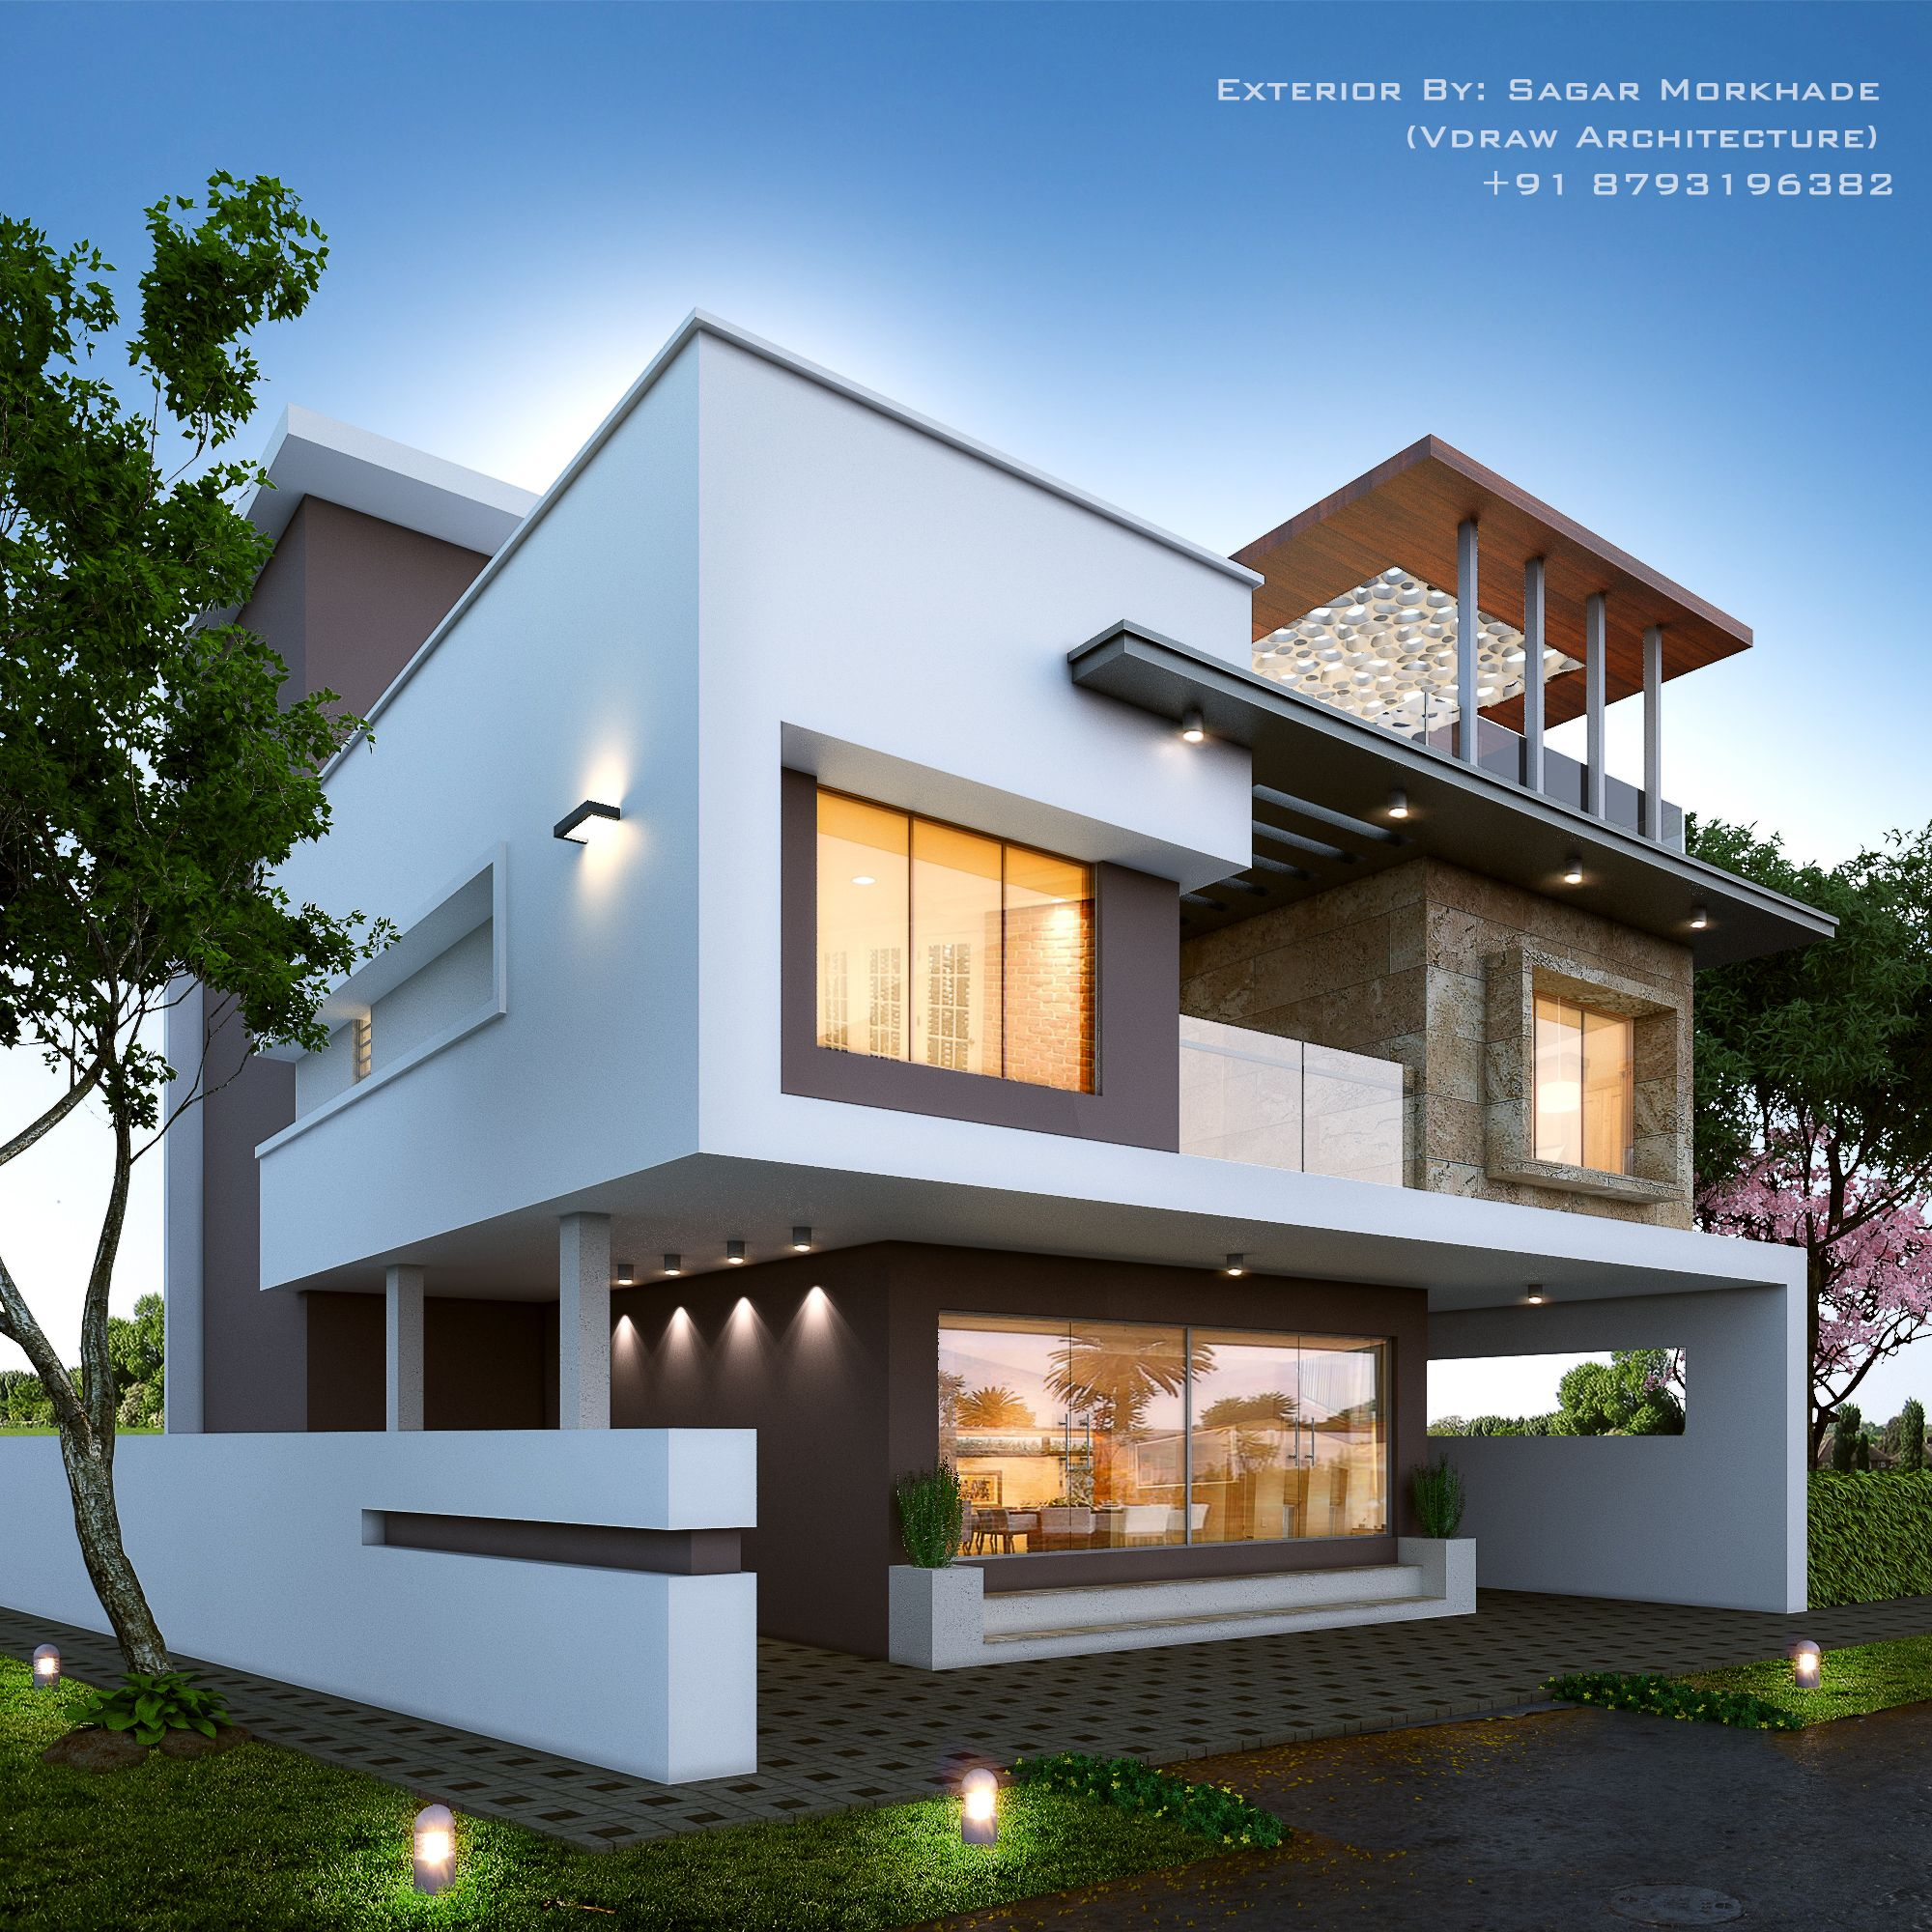 Modern_House_Exterior_Elevation By: Sagar Morkhade (Vdraw